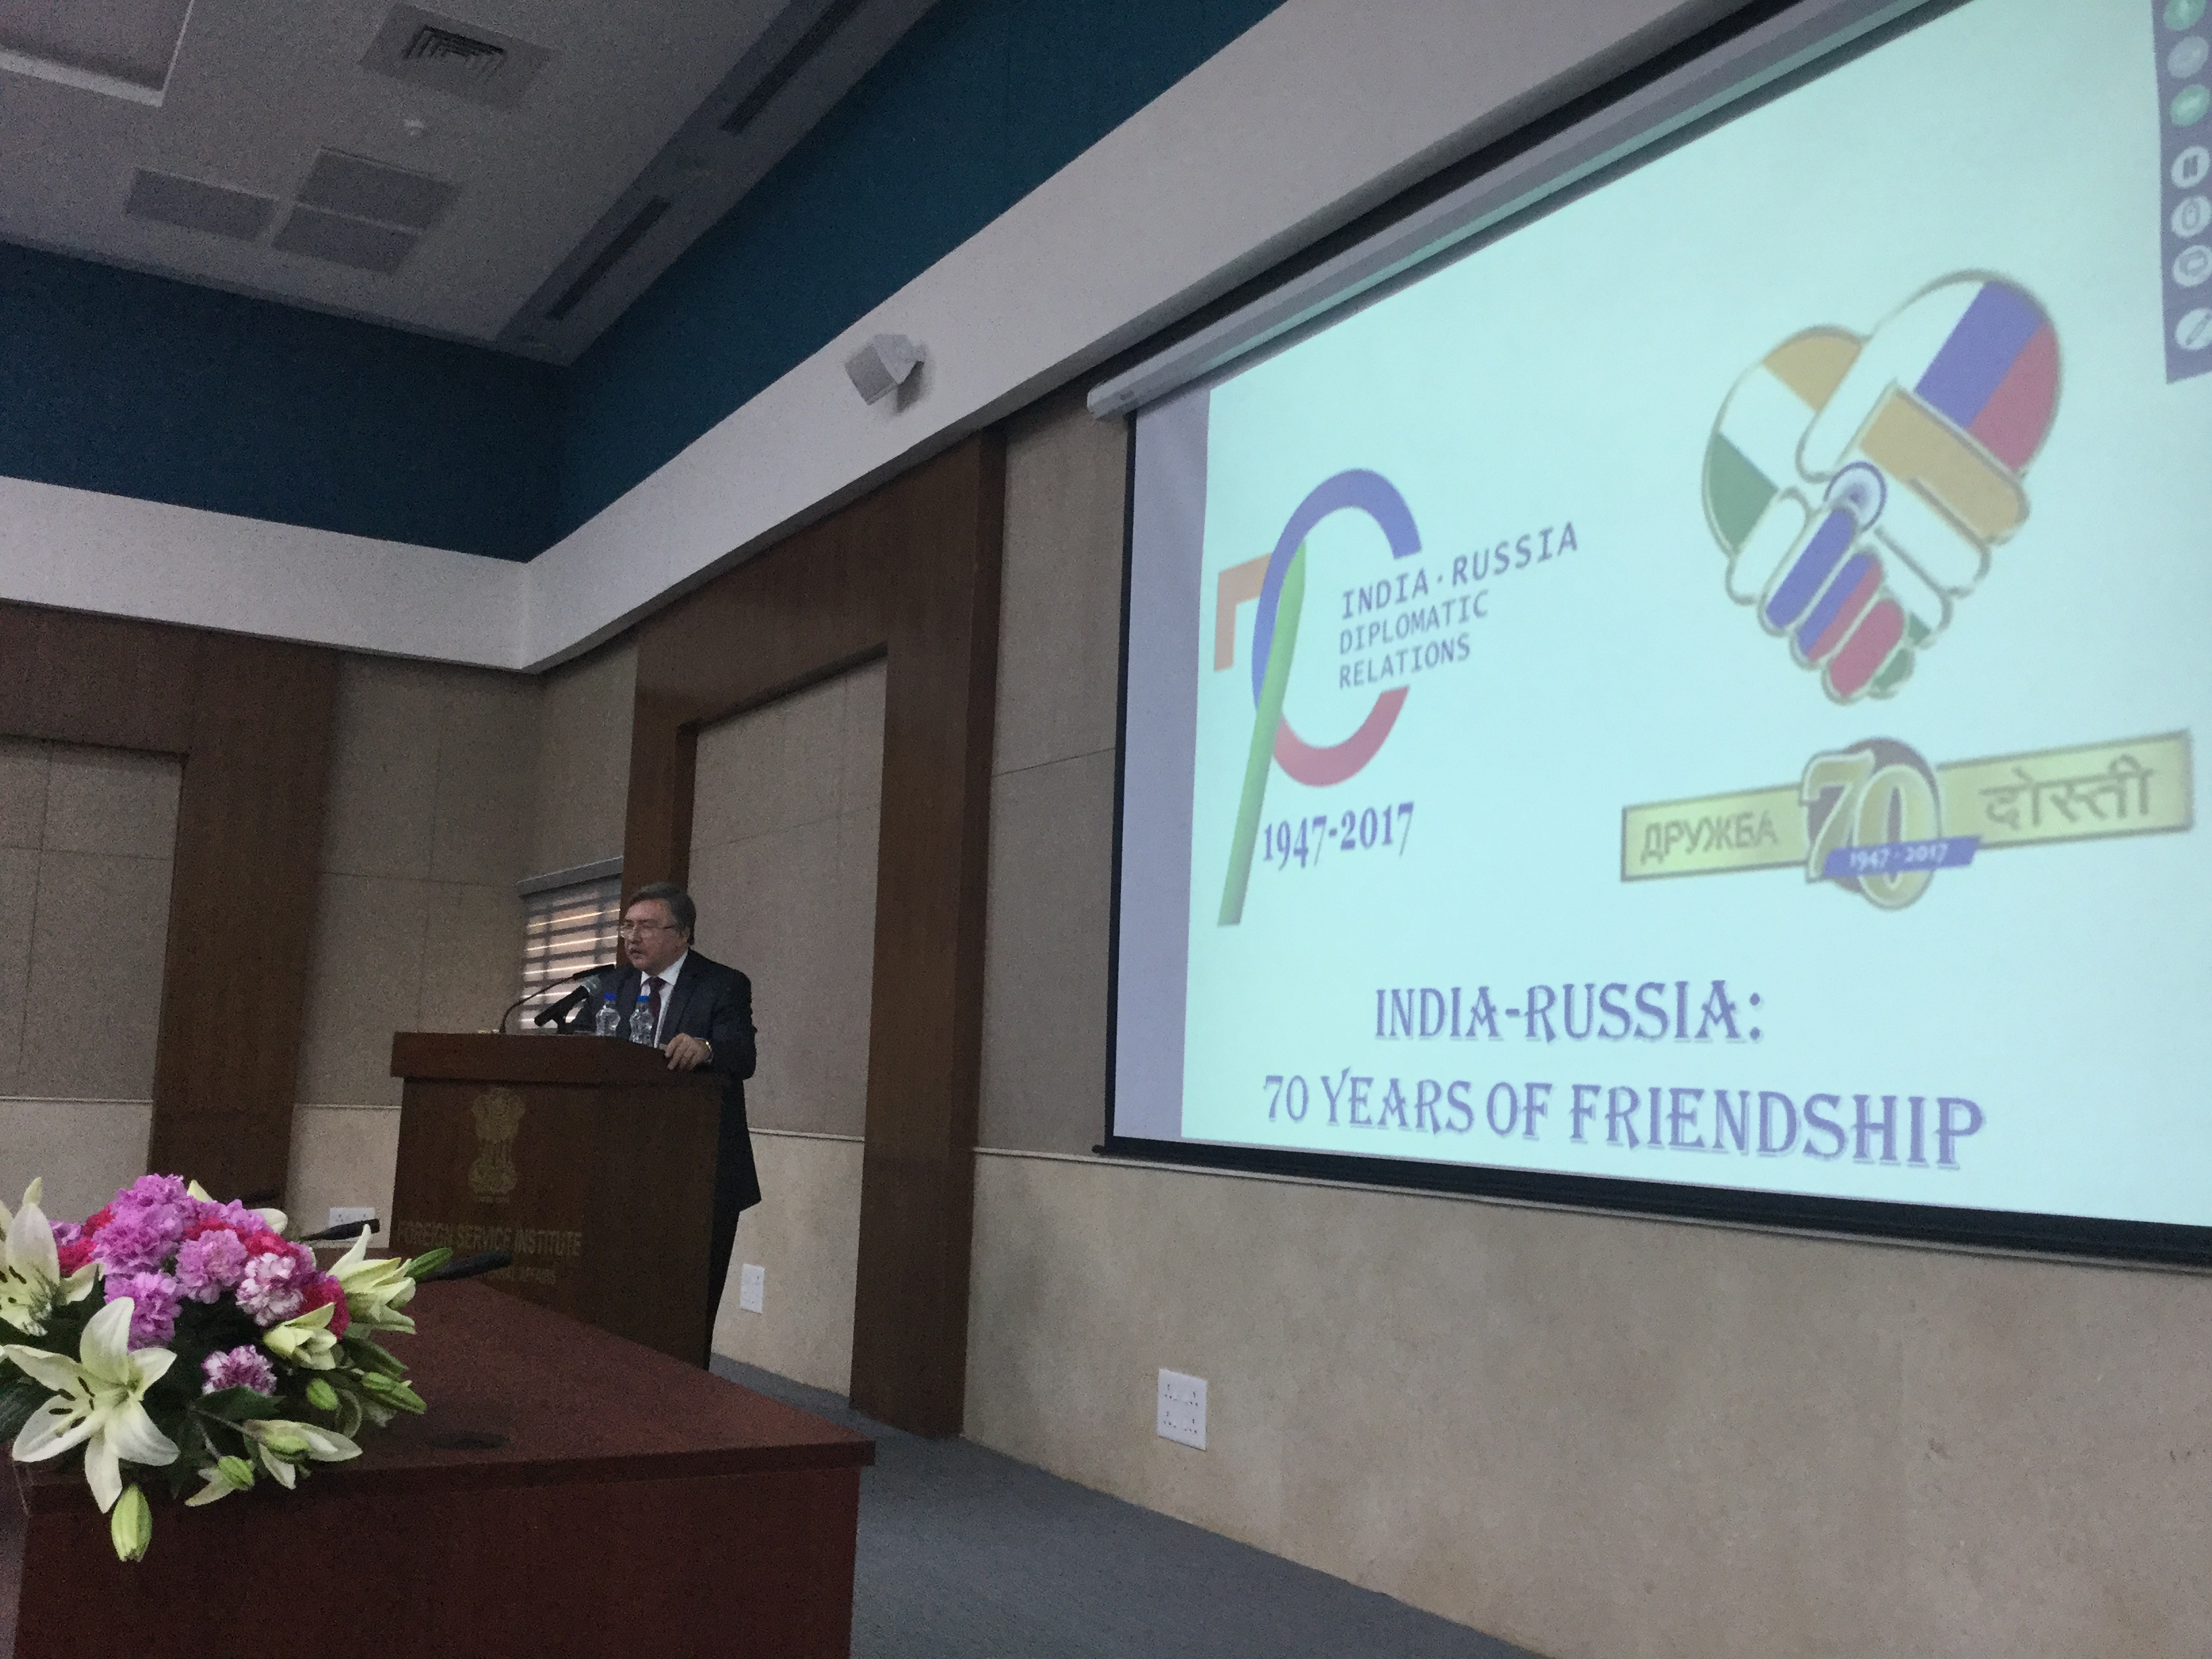 Mikhail Ulyanov at the Foreign Service Institute in New Delhi. Source: RIR